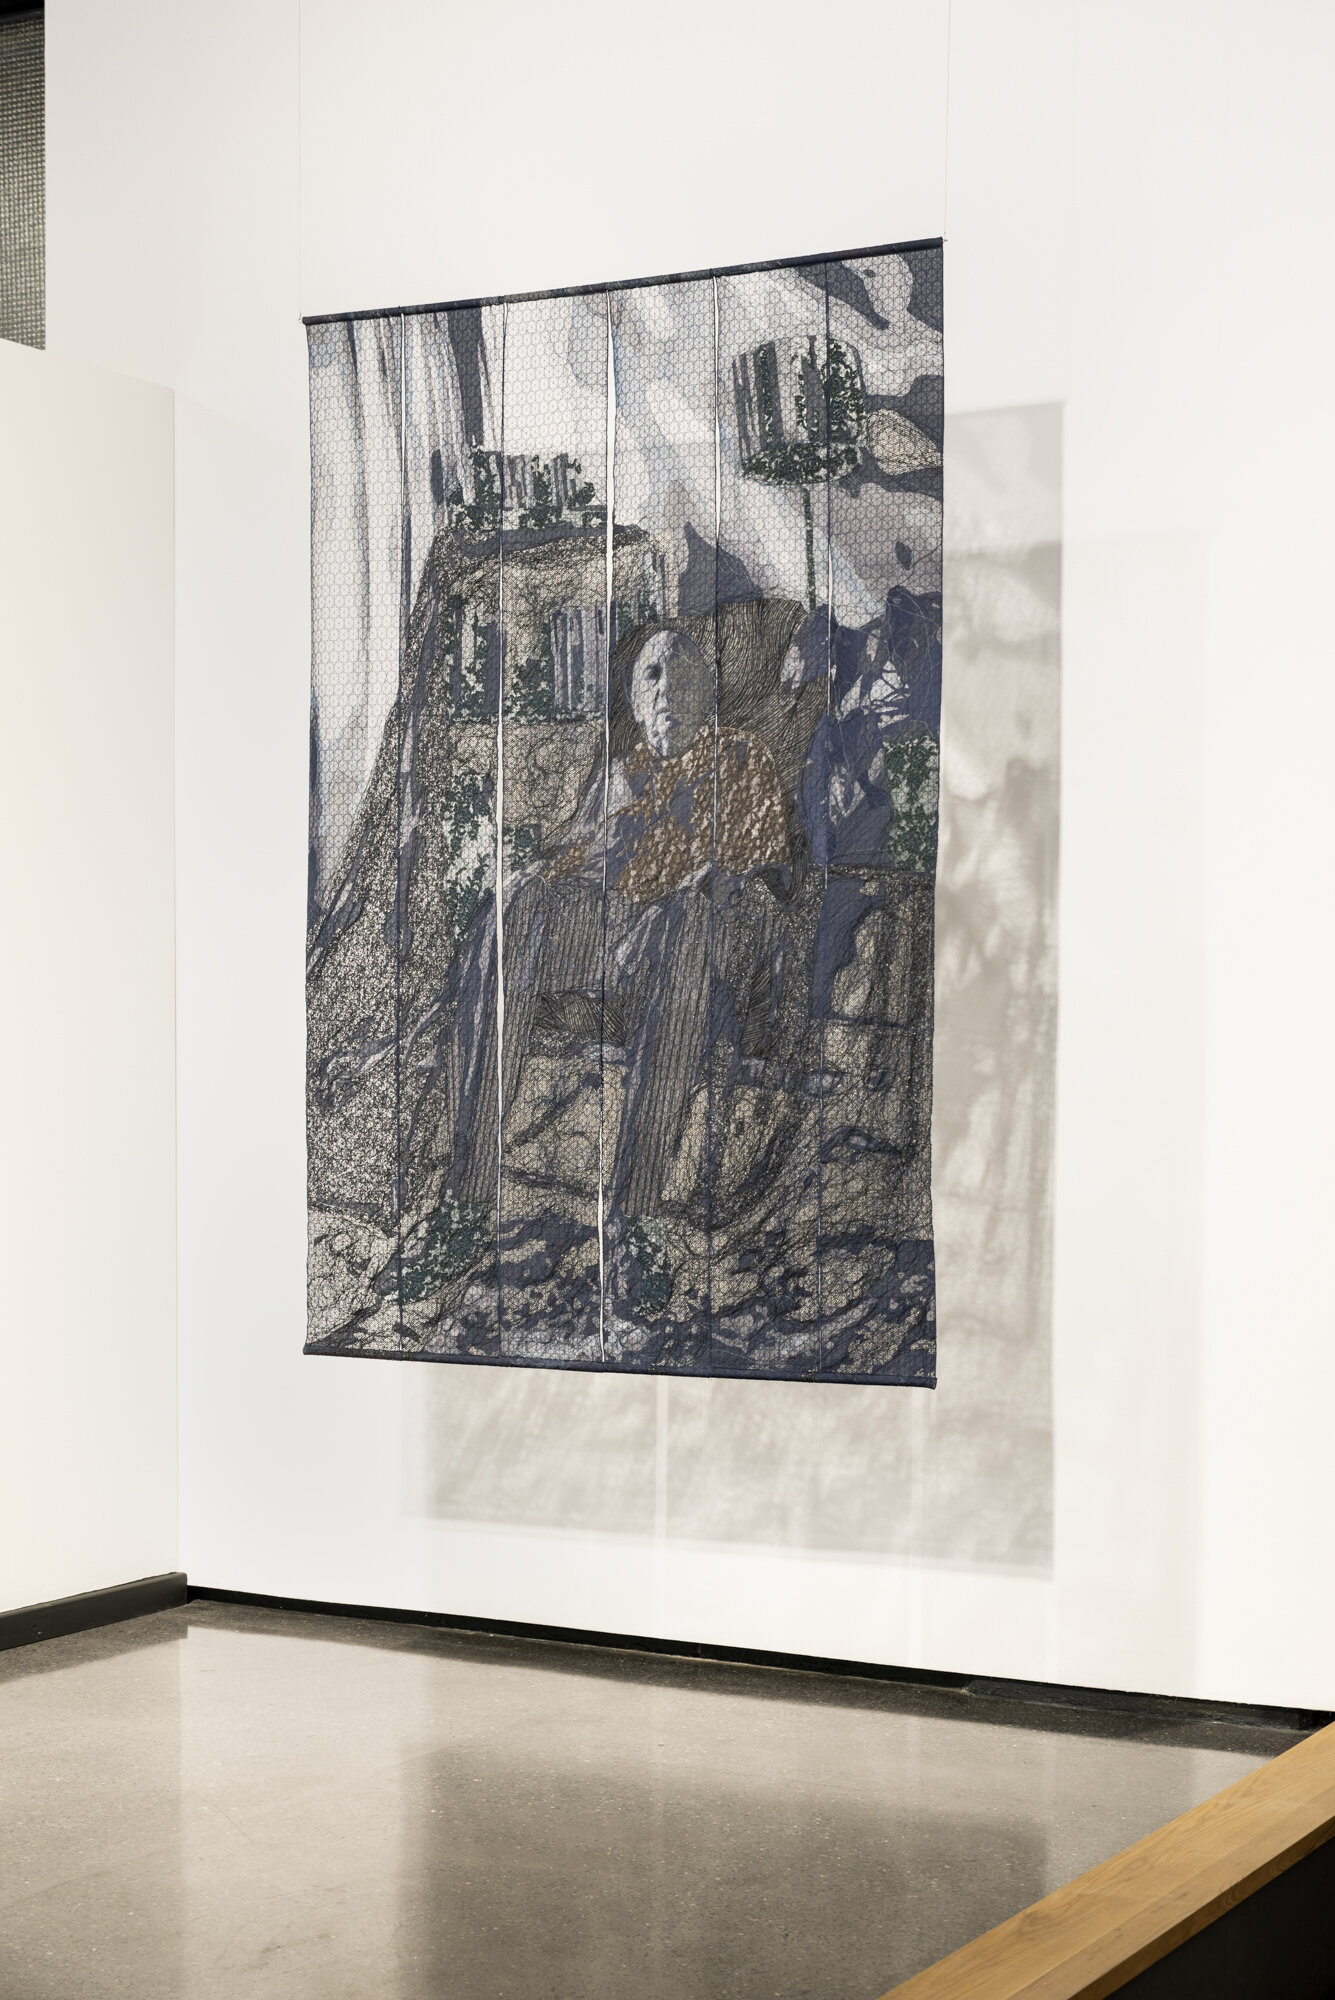 Your Young Voice (Portrait of Ivan Katzen)   Pierre Fouché  2012  Domestic sewing machine stitched lace, chiffon, tulle, fabric, acrylic thread in 6 panels